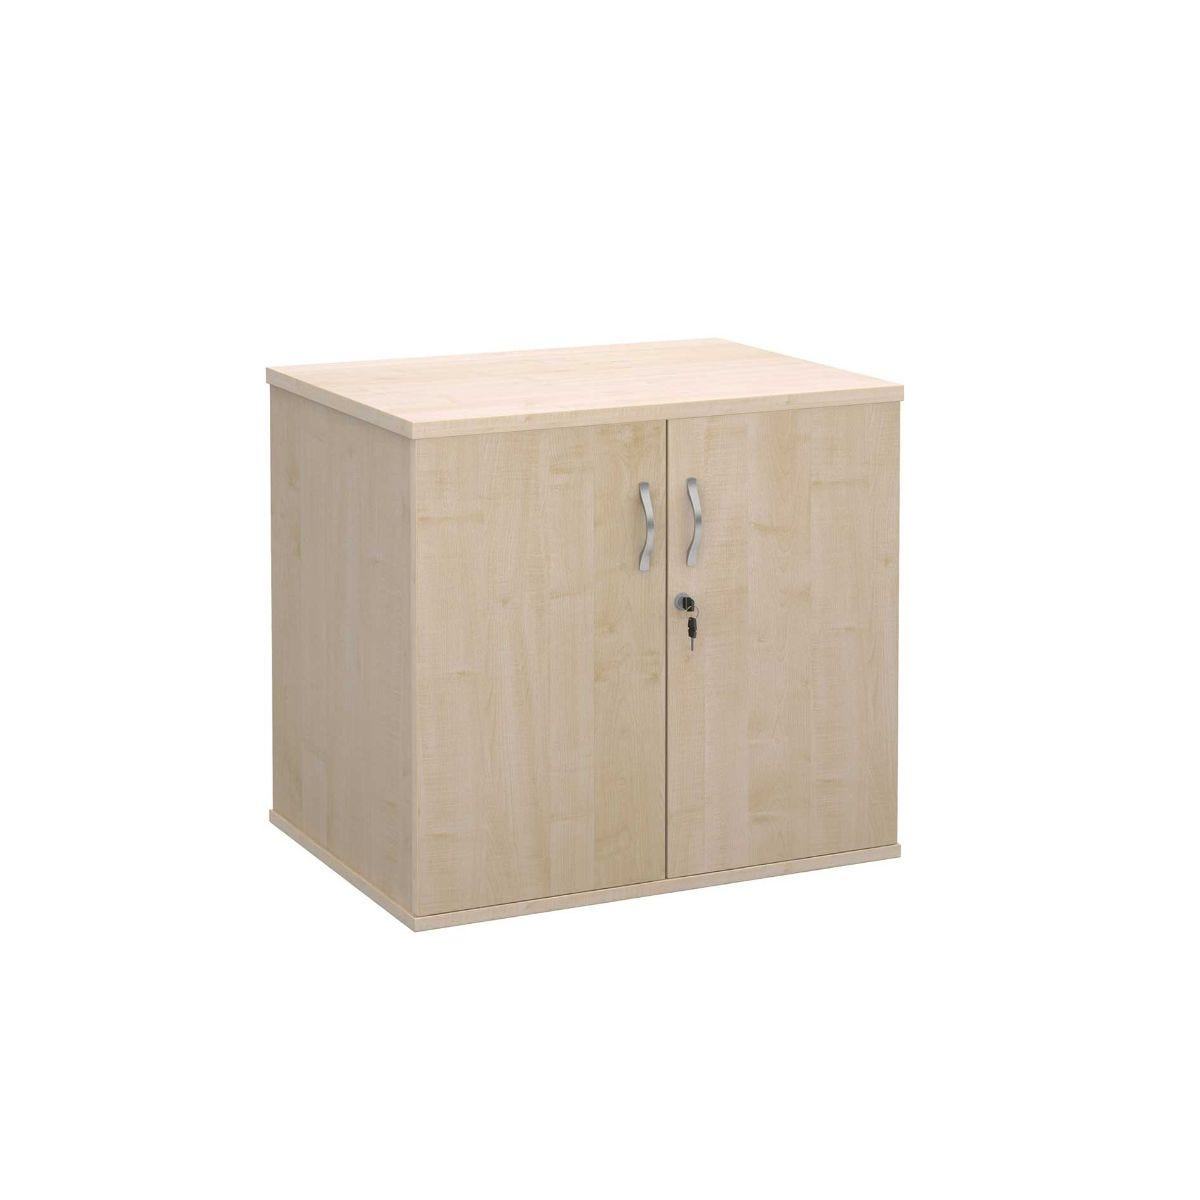 Desk High Cupboard with Doors, Maple